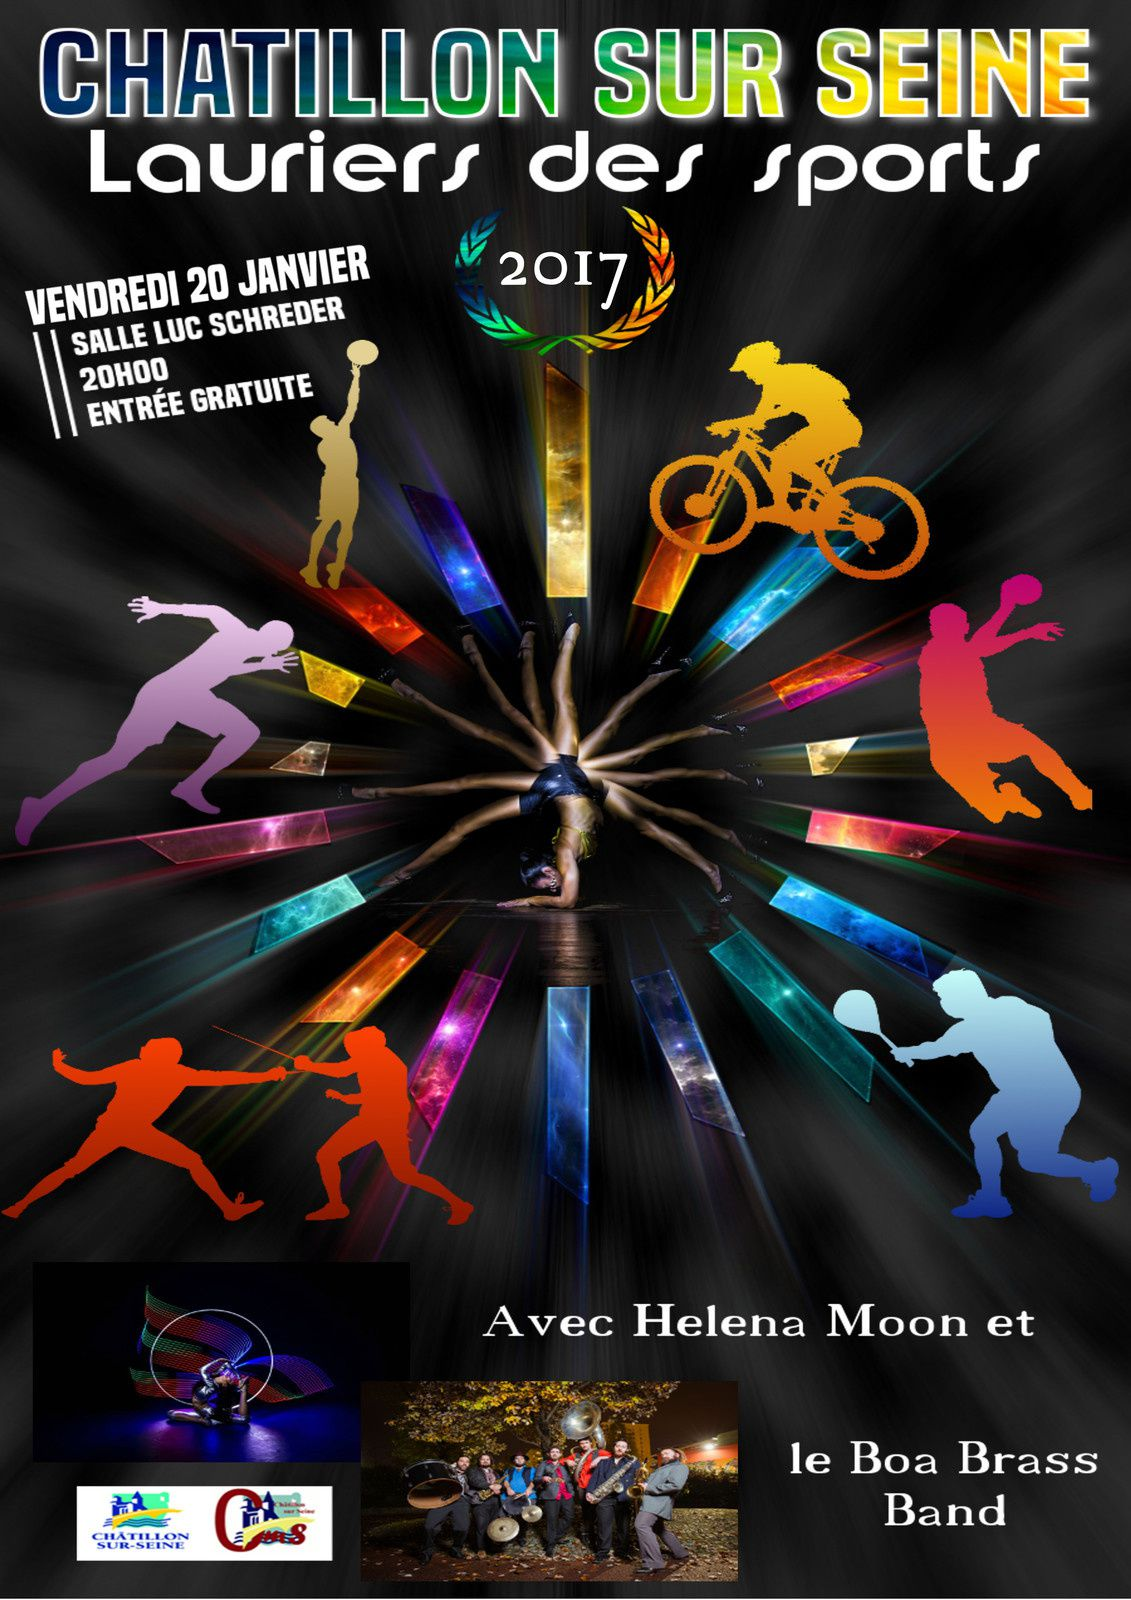 LAURIERS DES SPORTS 2017